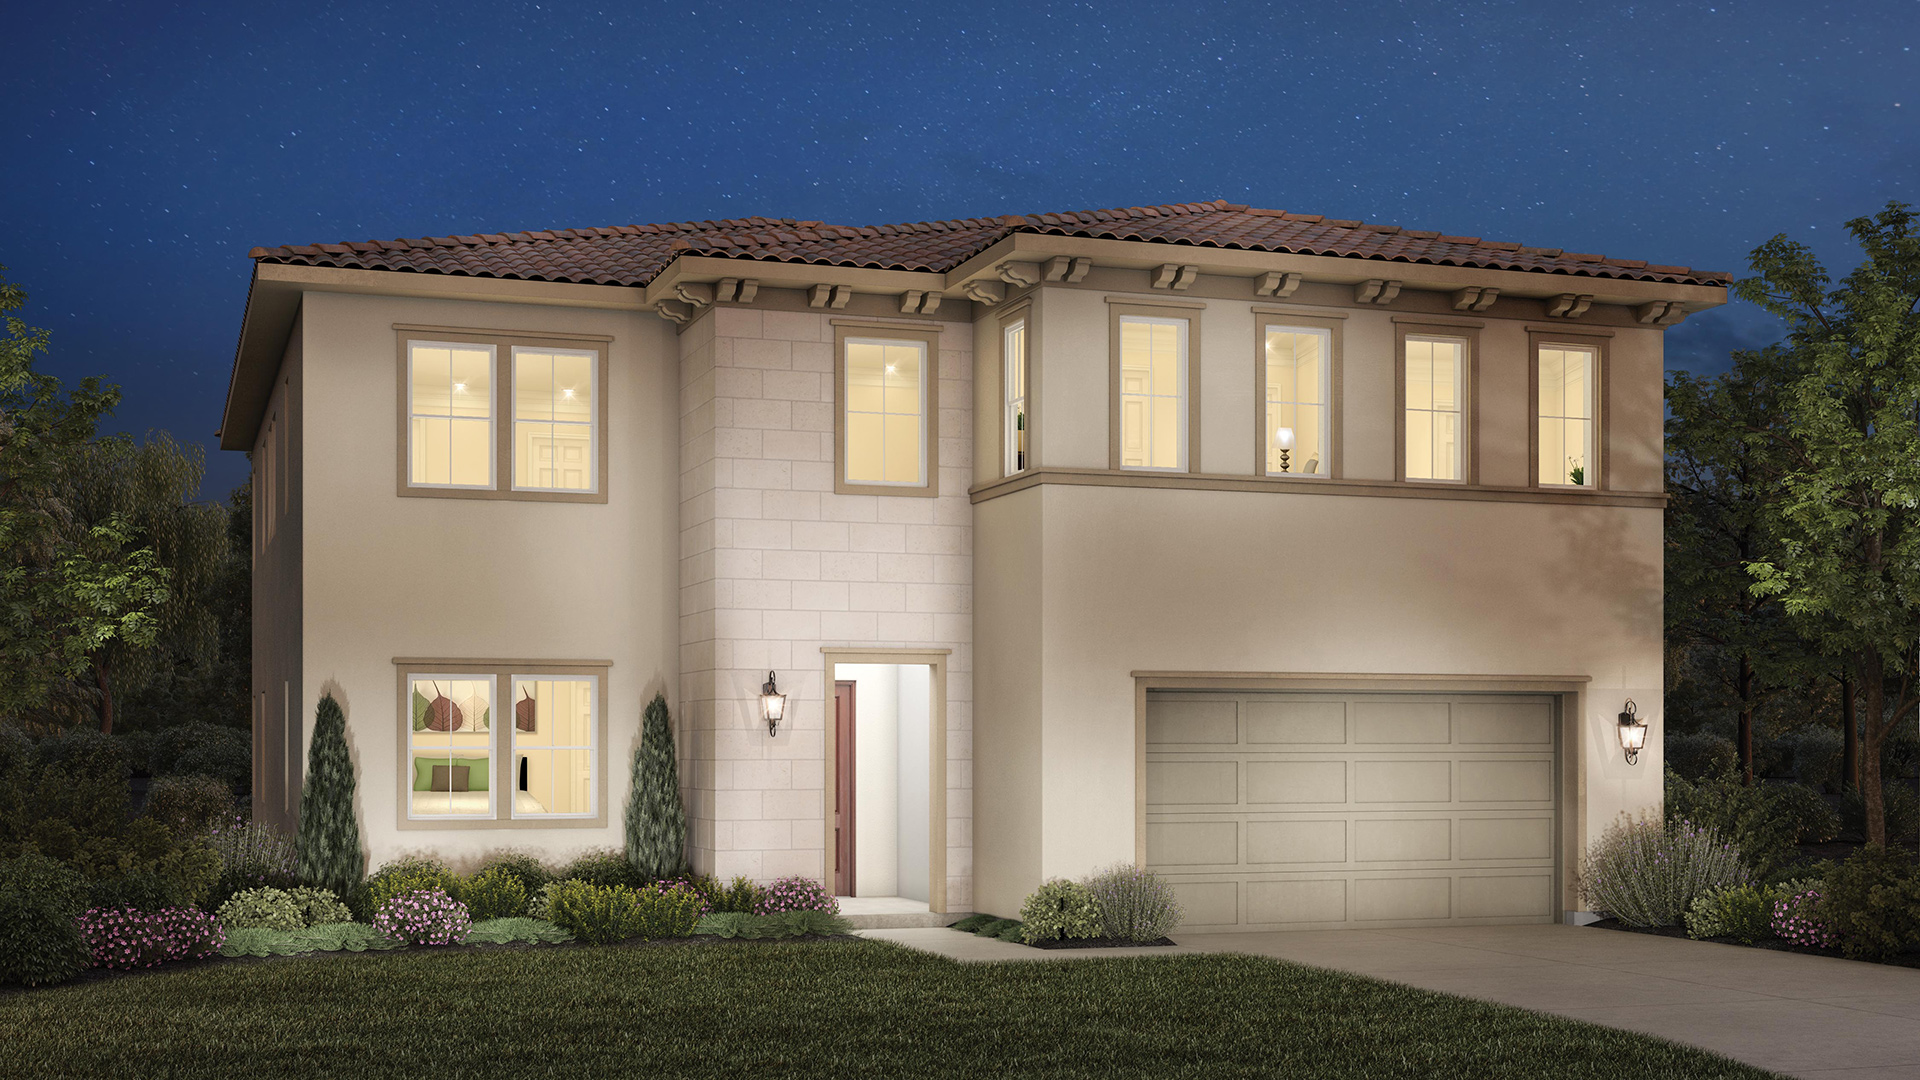 Avalon at plum canyon quick delivery home vittoria for Italianate homes for sale